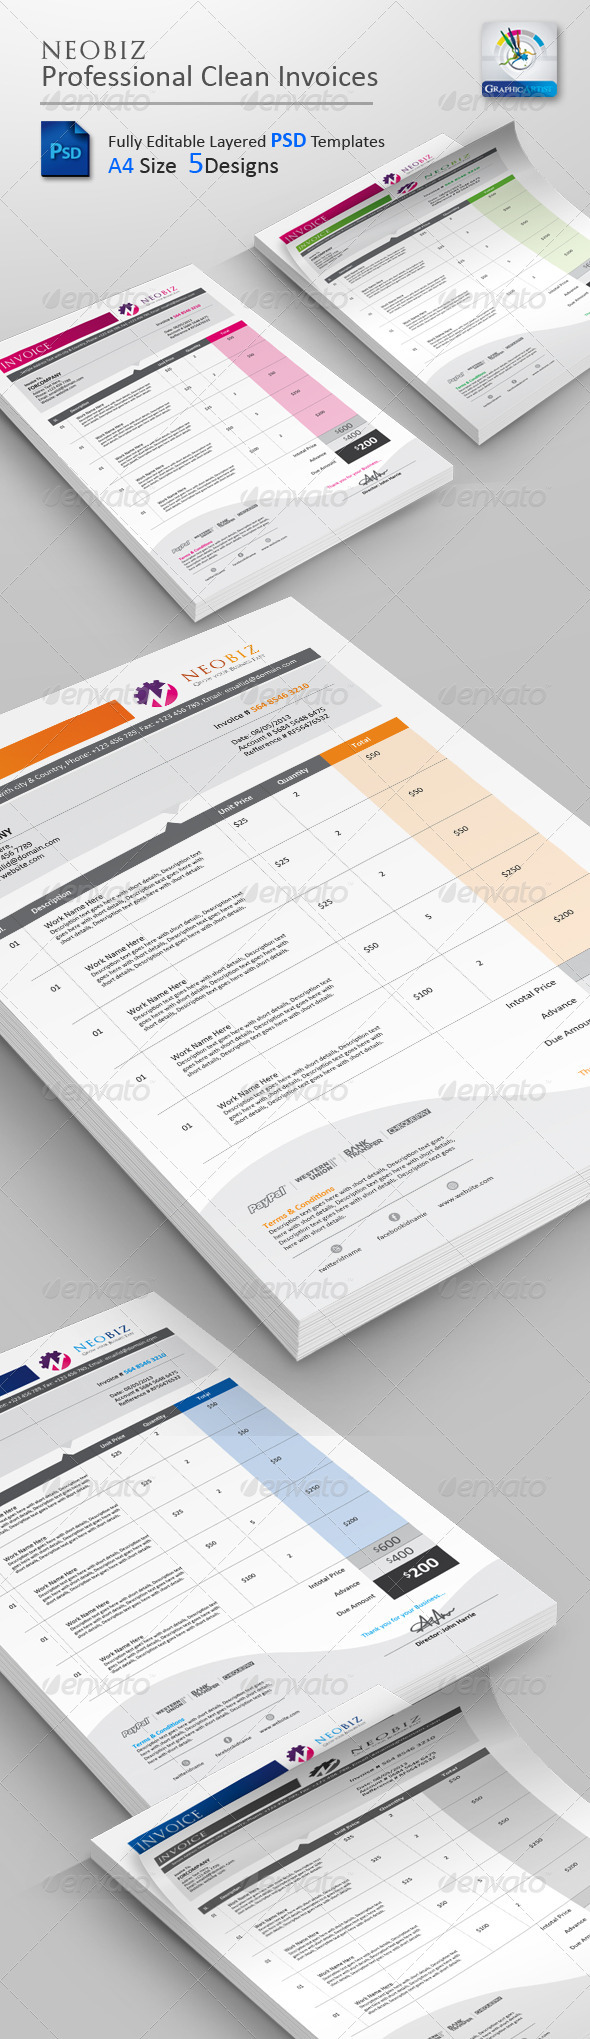 NeoBiz Clean Invoice PSD Templates - Proposals & Invoices Stationery